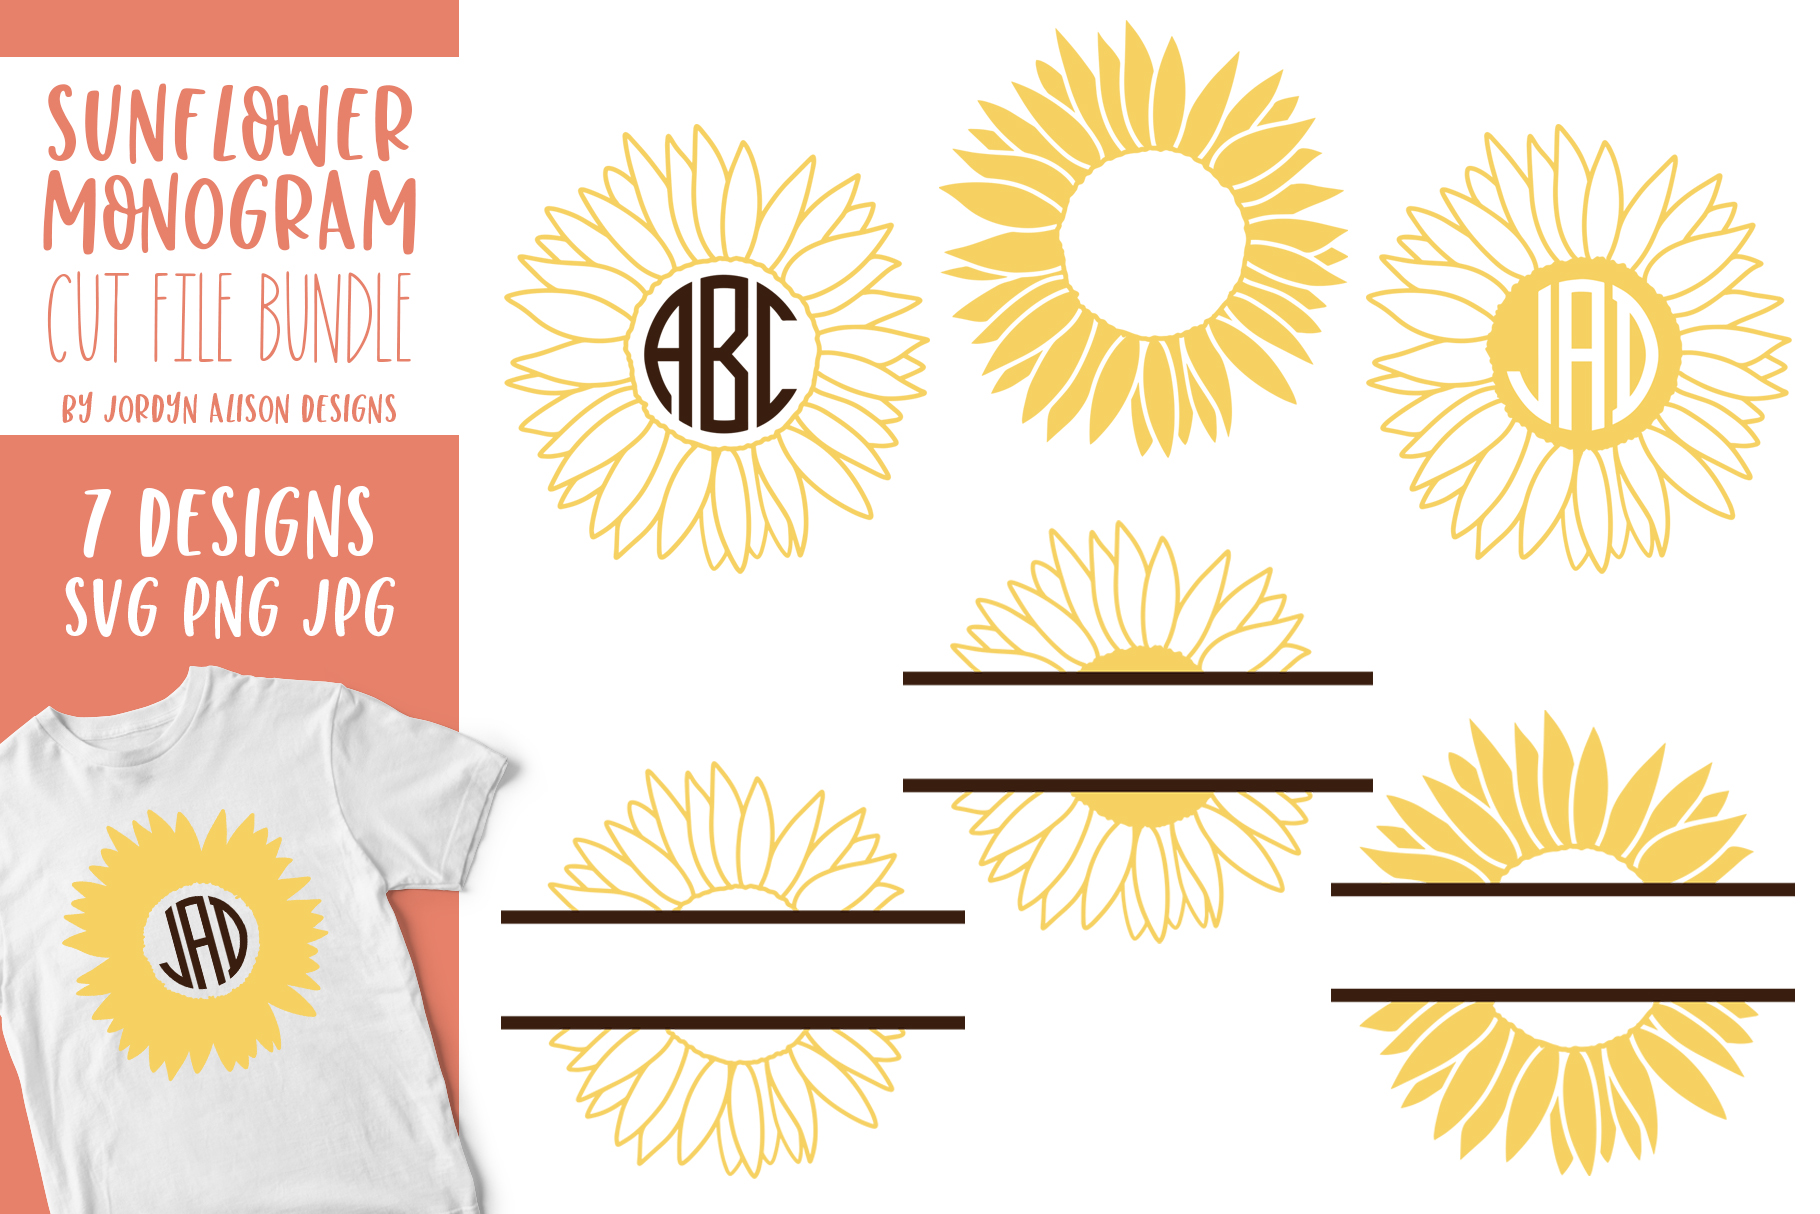 Download Free Sunflower Split Monogram Graphic By Jordynalisondesigns for Cricut Explore, Silhouette and other cutting machines.